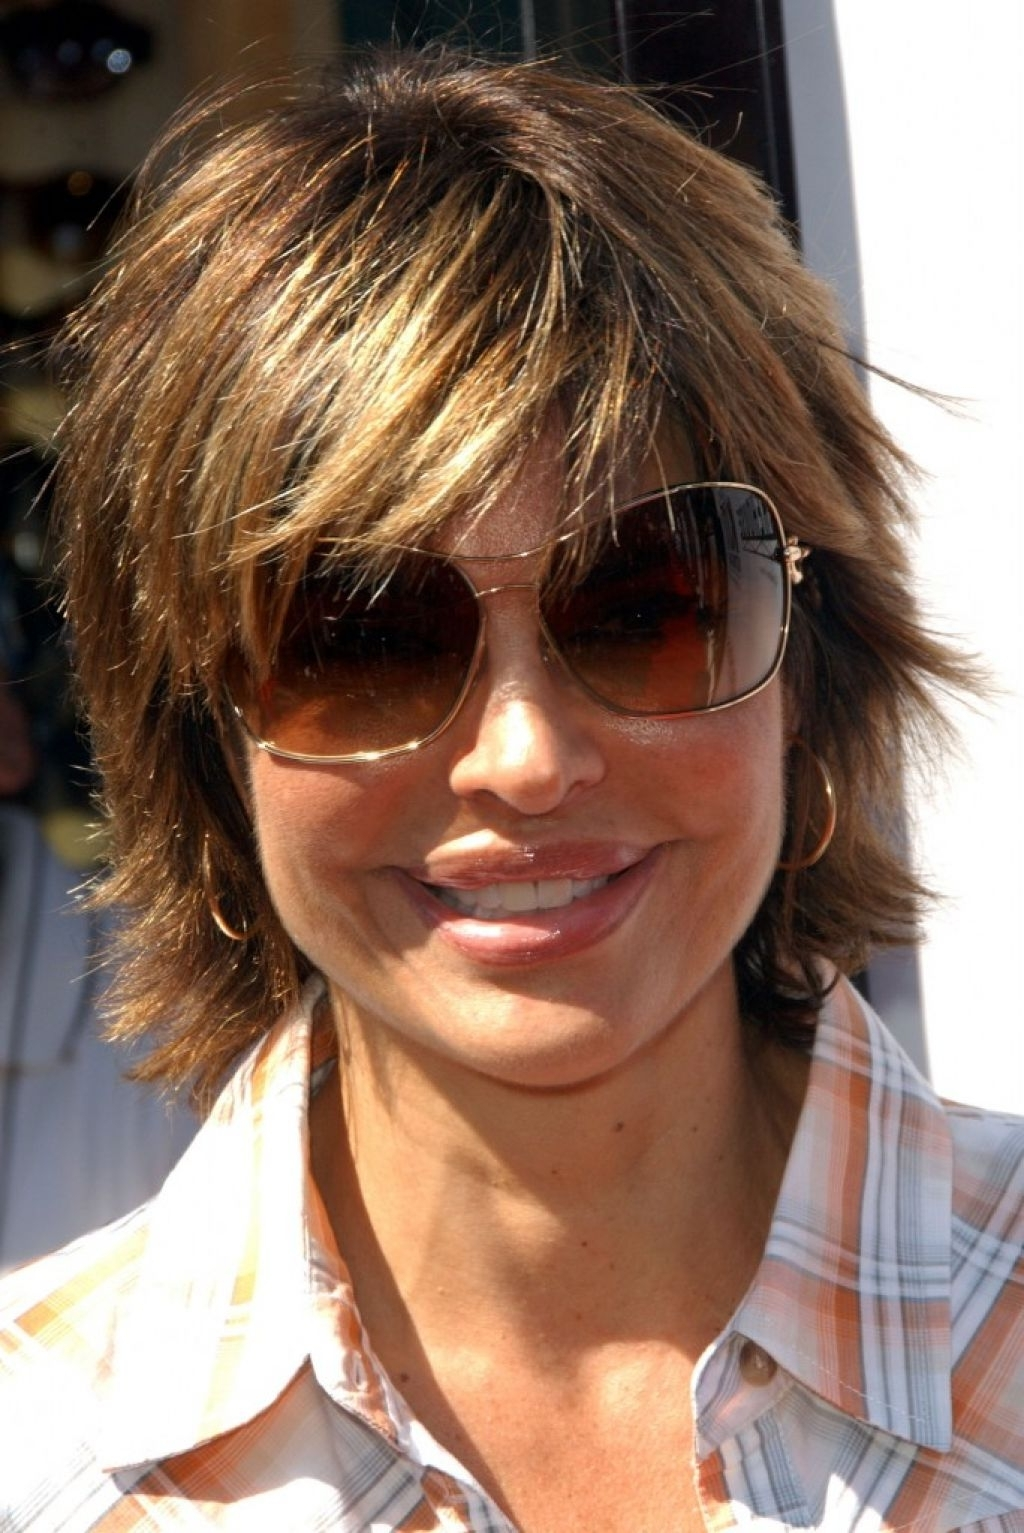 Fashionable Shaggy Hairstyles For Over 40 Regarding Short Shag Hairstyles For Women Over 50 – Popular Long Hairstyle Idea (View 3 of 15)